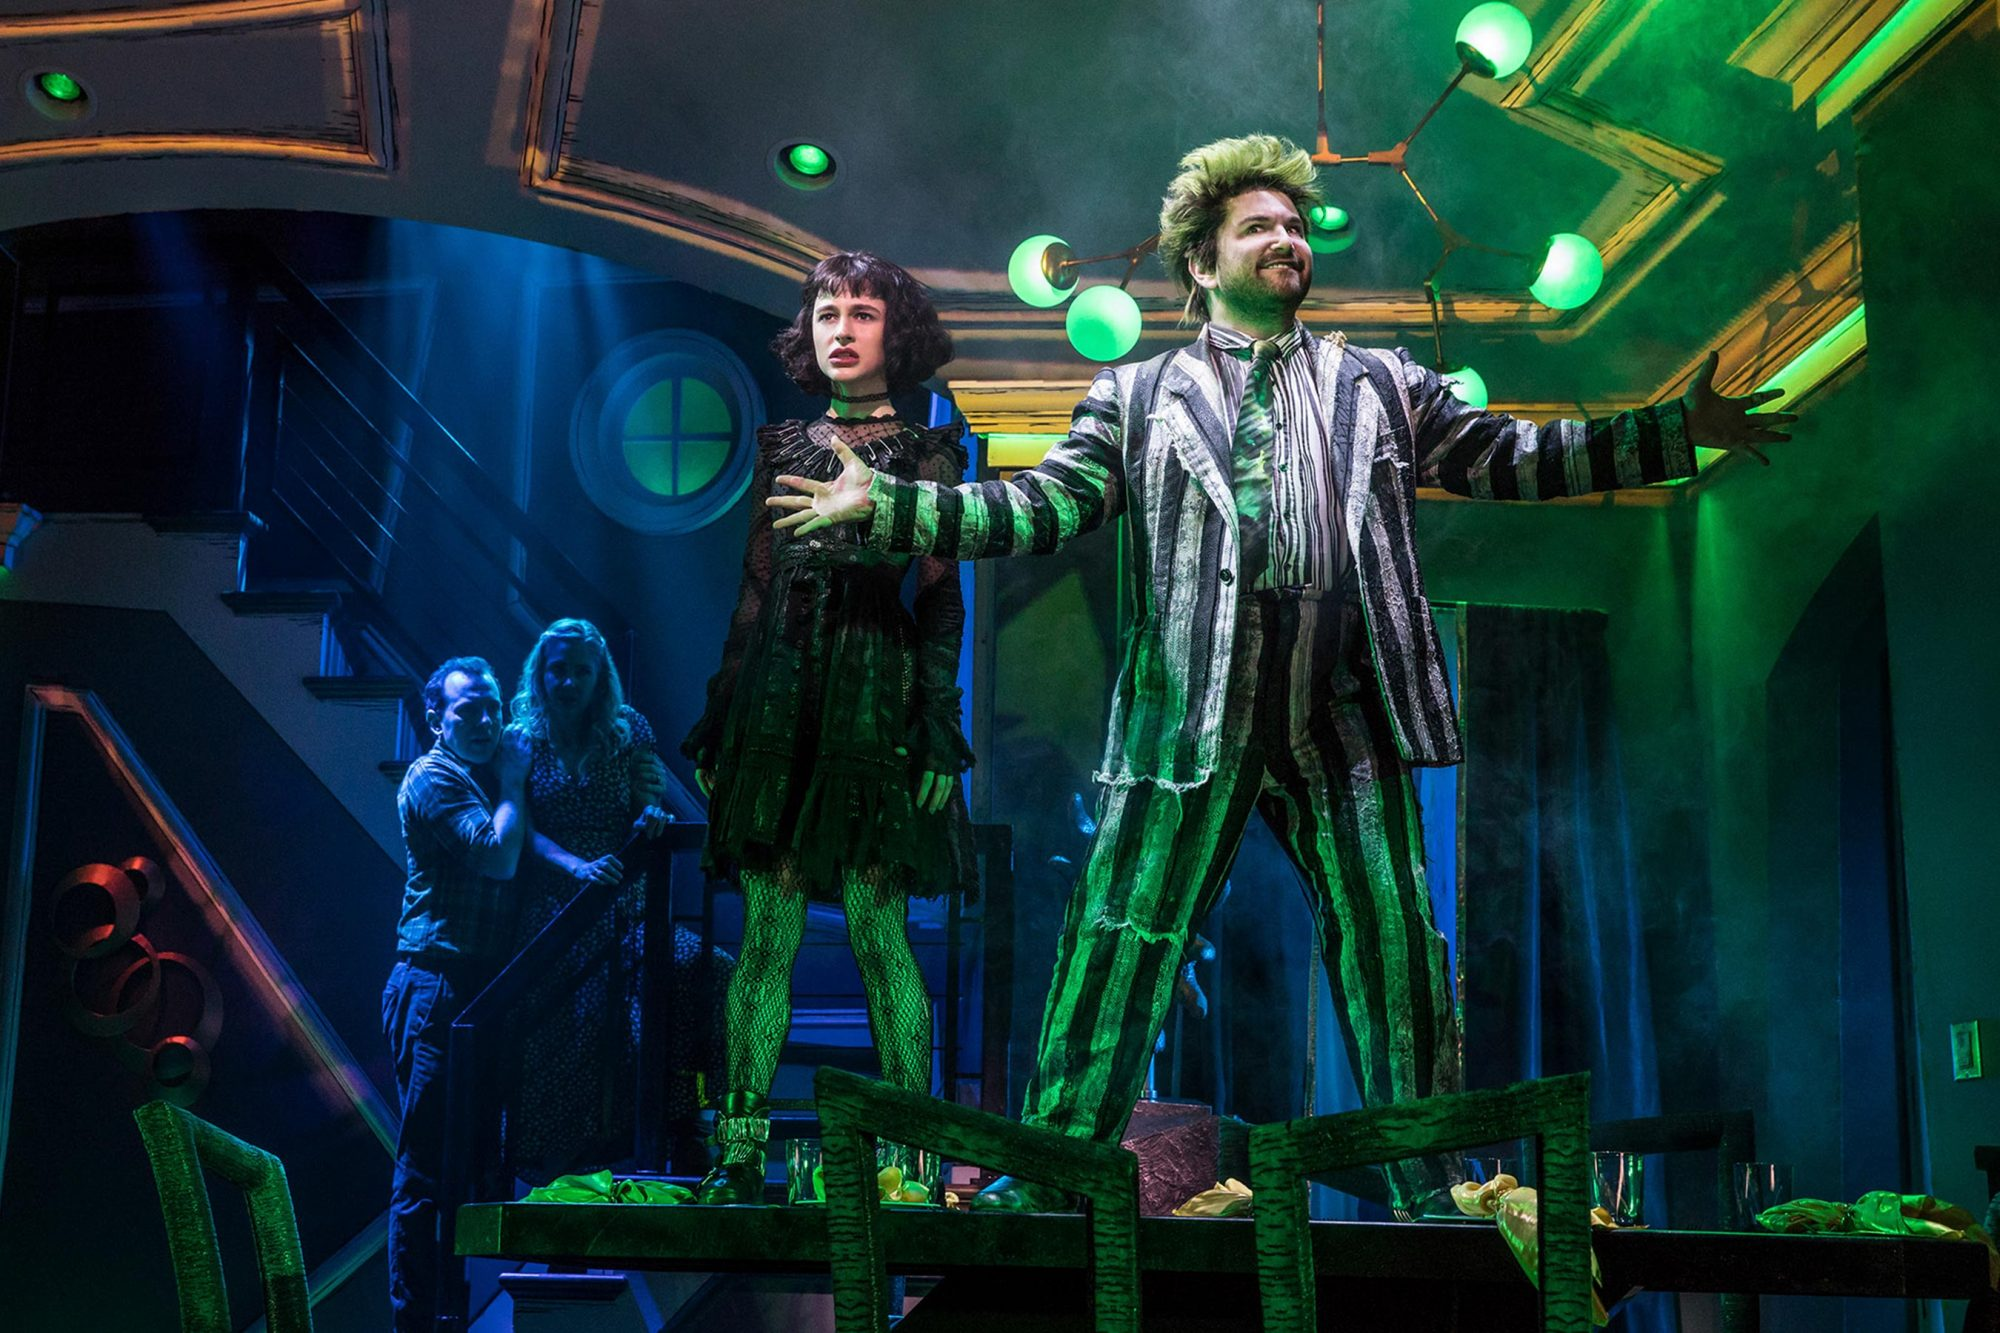 ROB McCLURE, KERRY BUTLER, SOPHIA ANNE CARUSO, ALEX BRIGHTMAN in BEETLEJUICE, Photo by Matthew Murphy, 2019